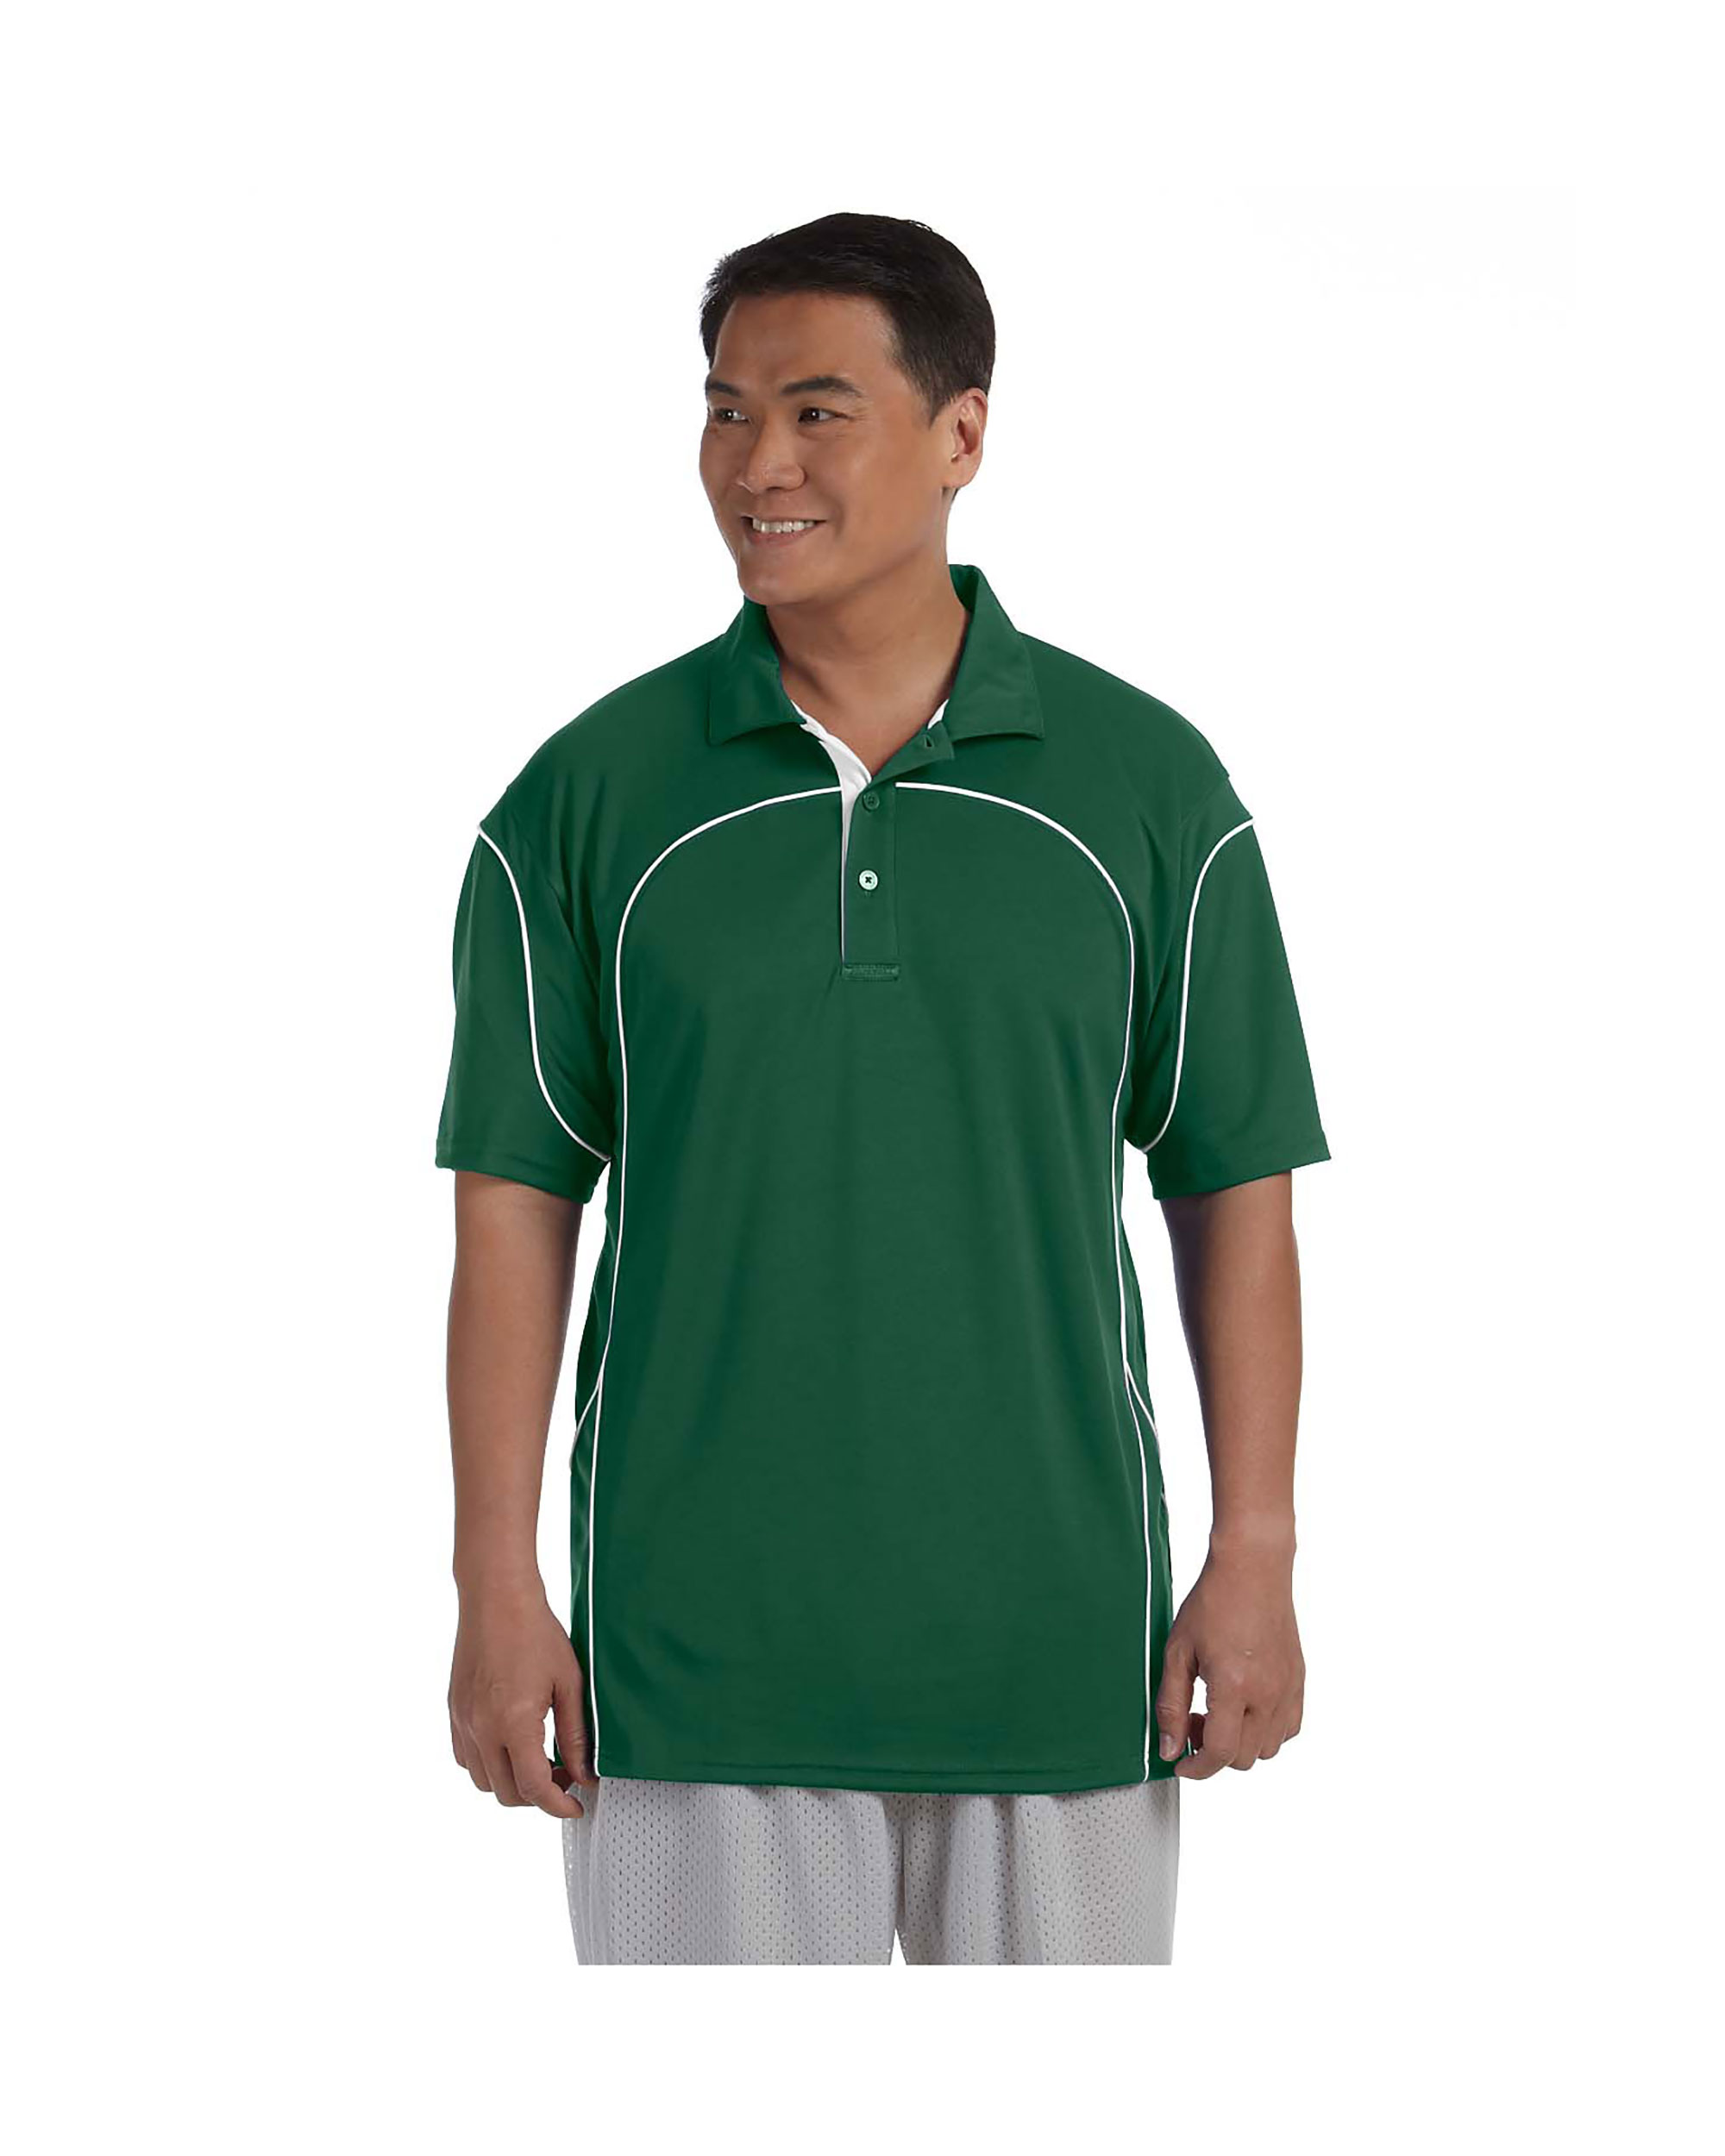 8d91184a8 Russell Athletic Polo Shirts - DREAMWORKS